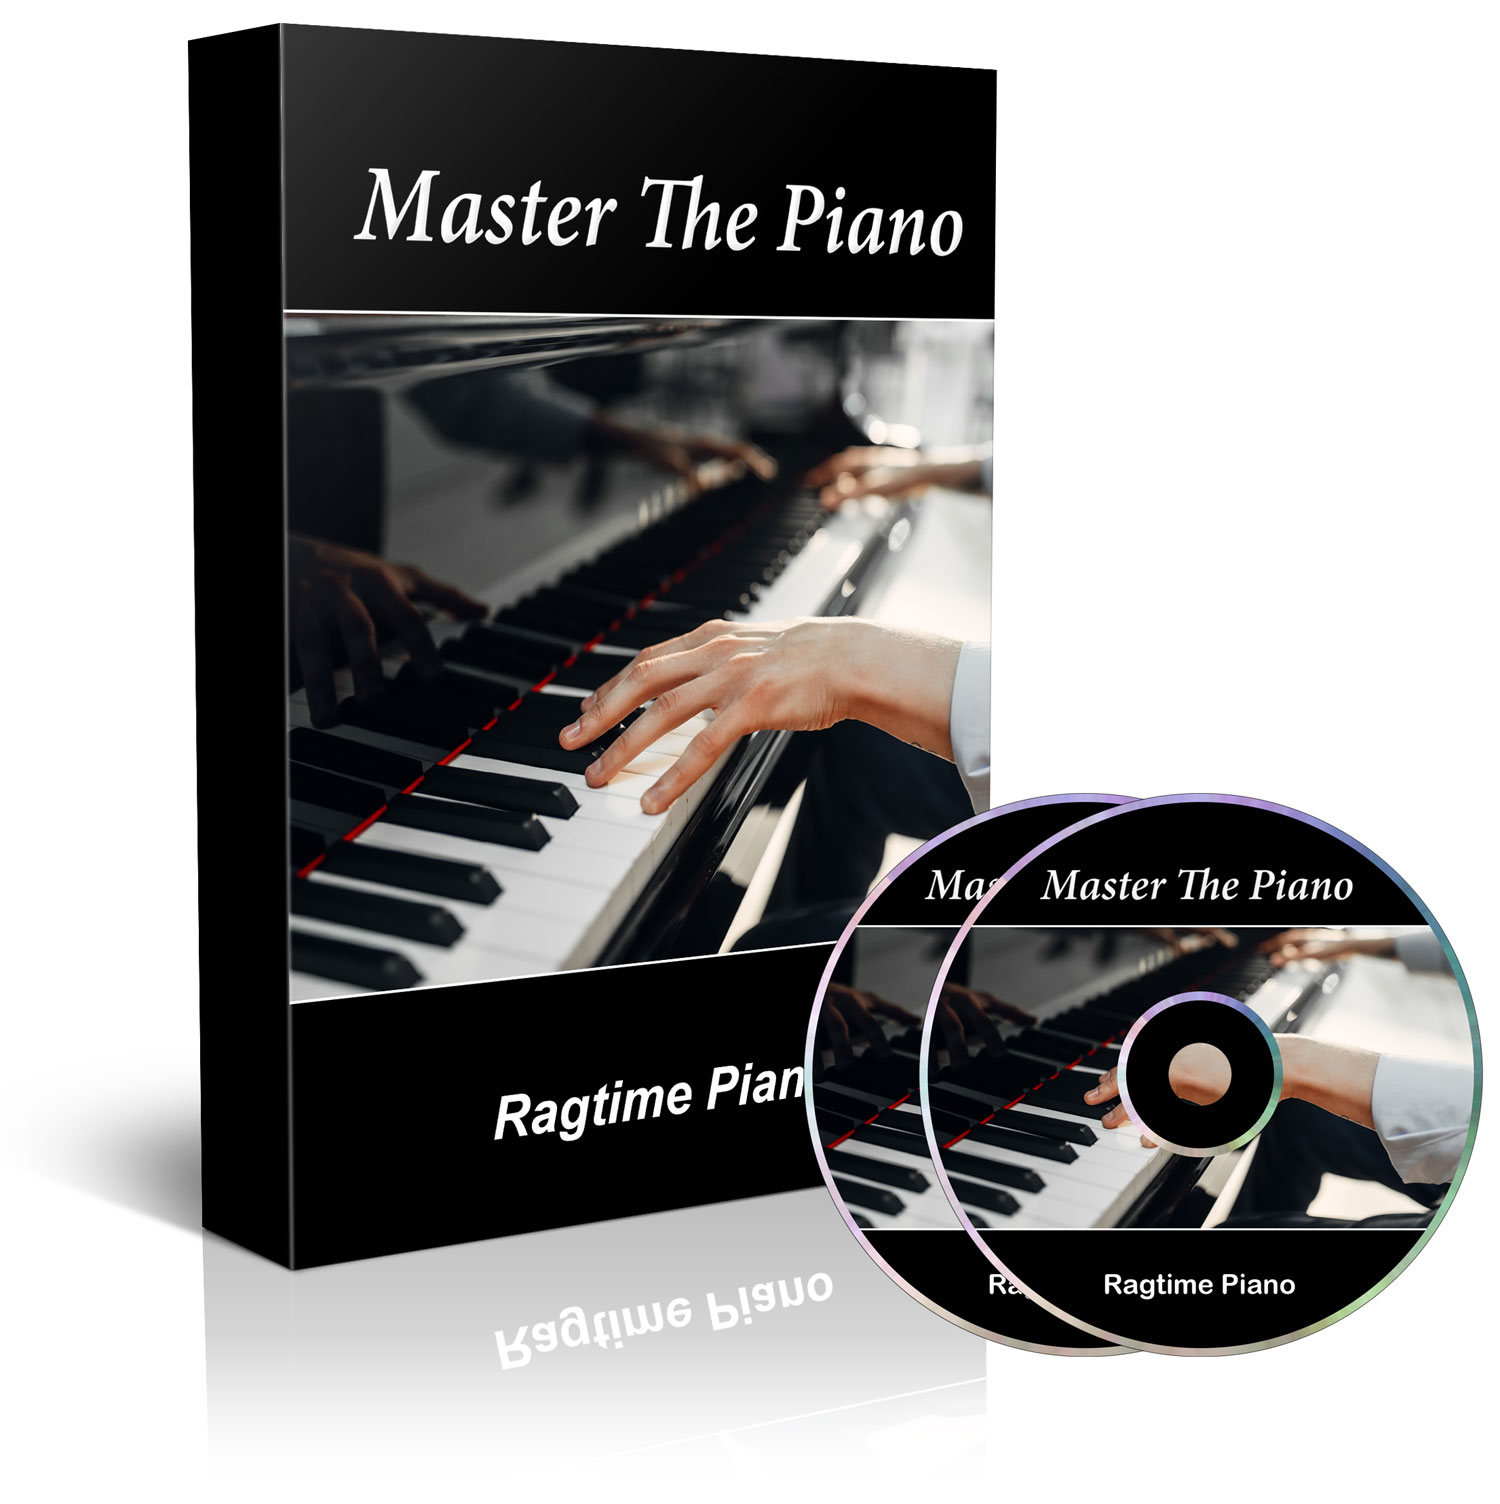 Ragtime Piano Mastery